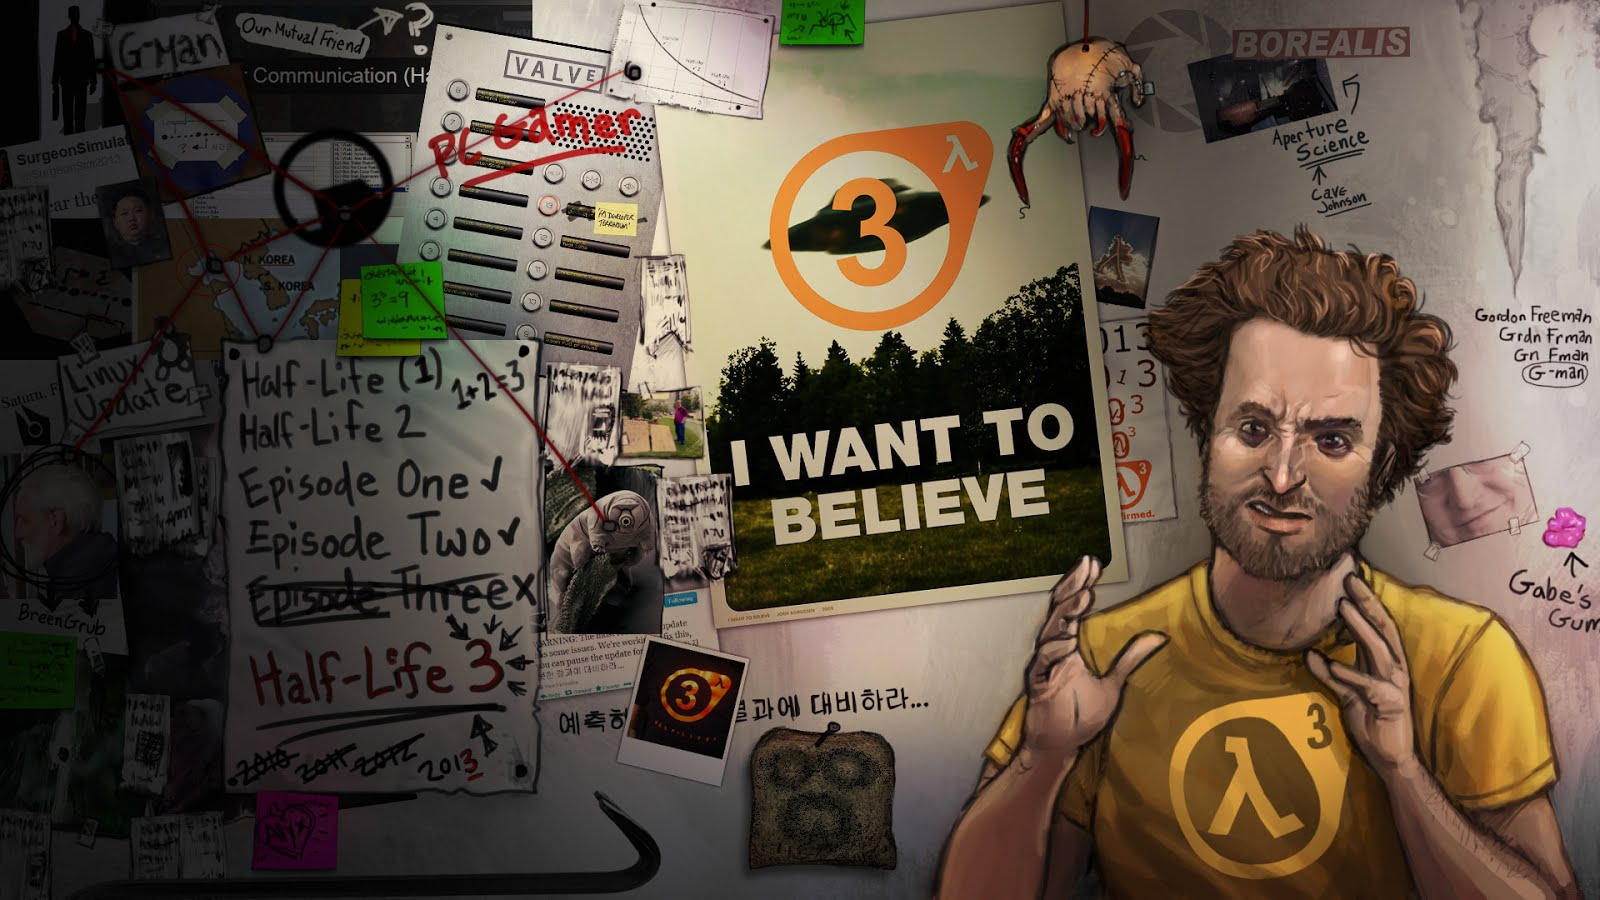 half-life-3-i-want-to-believe.jpg